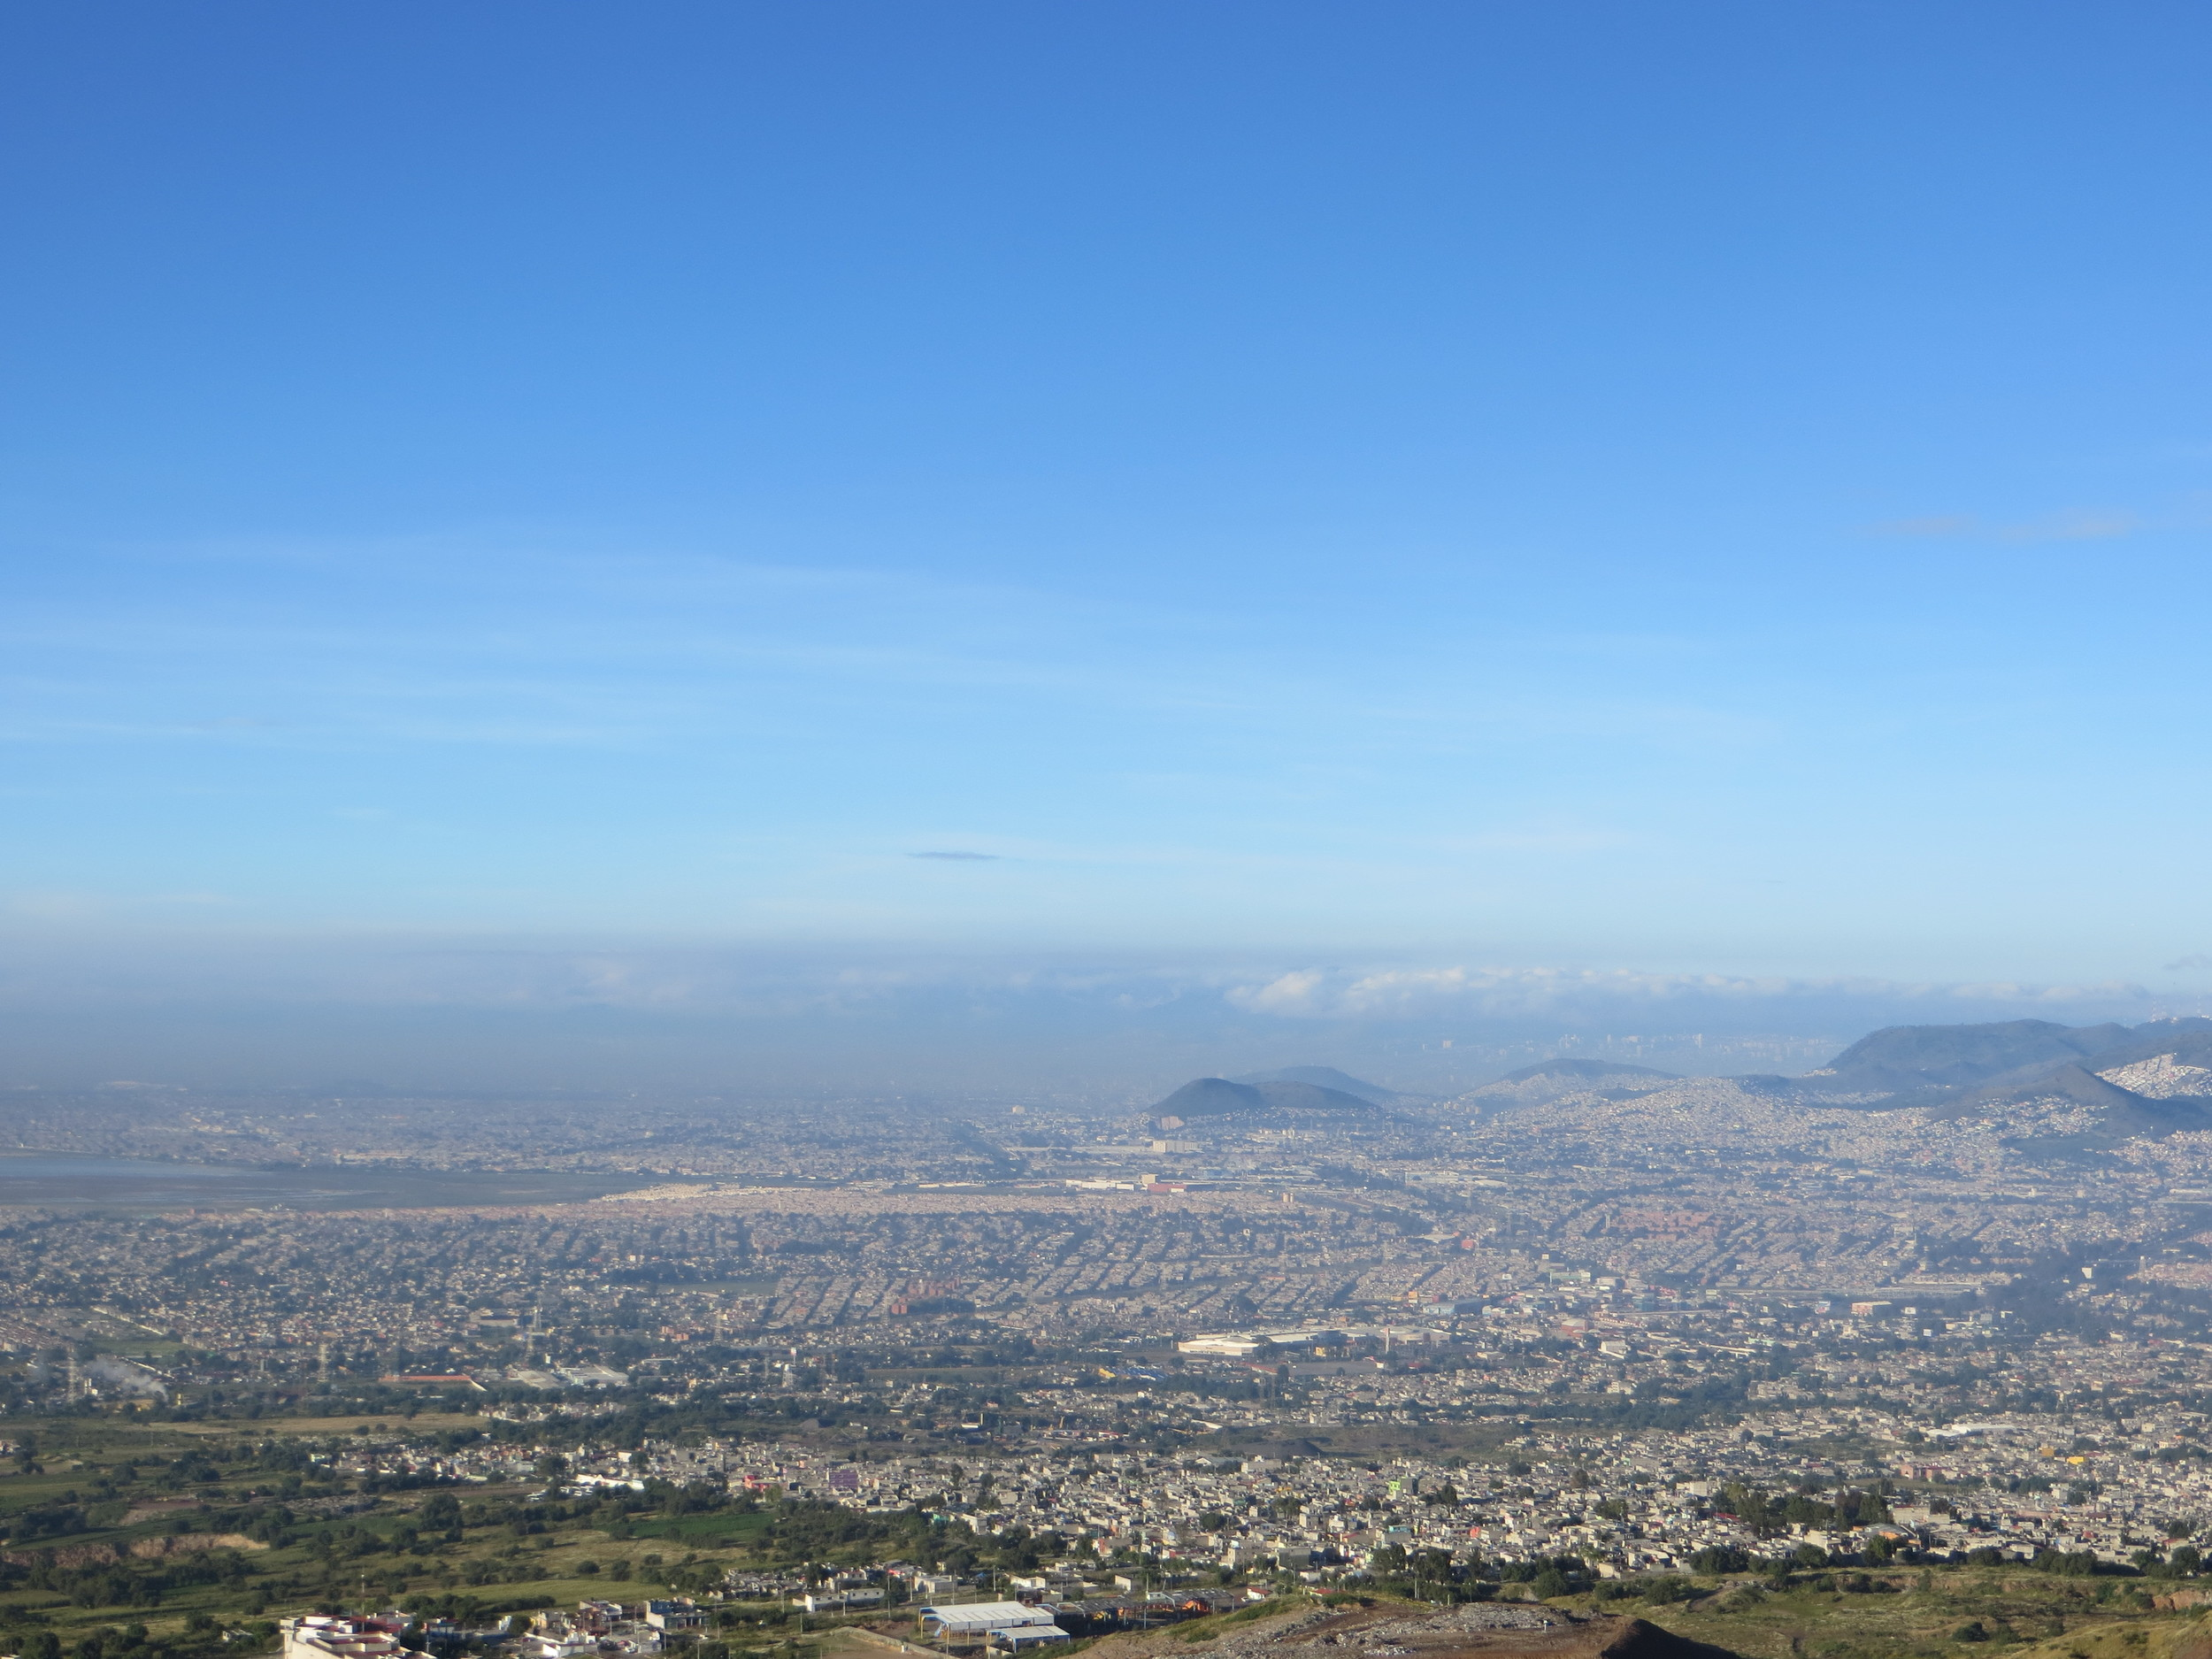 Chiconautla, some of which is visible in the foreground, blends in with the rest of Mexico City's metropolitan area.